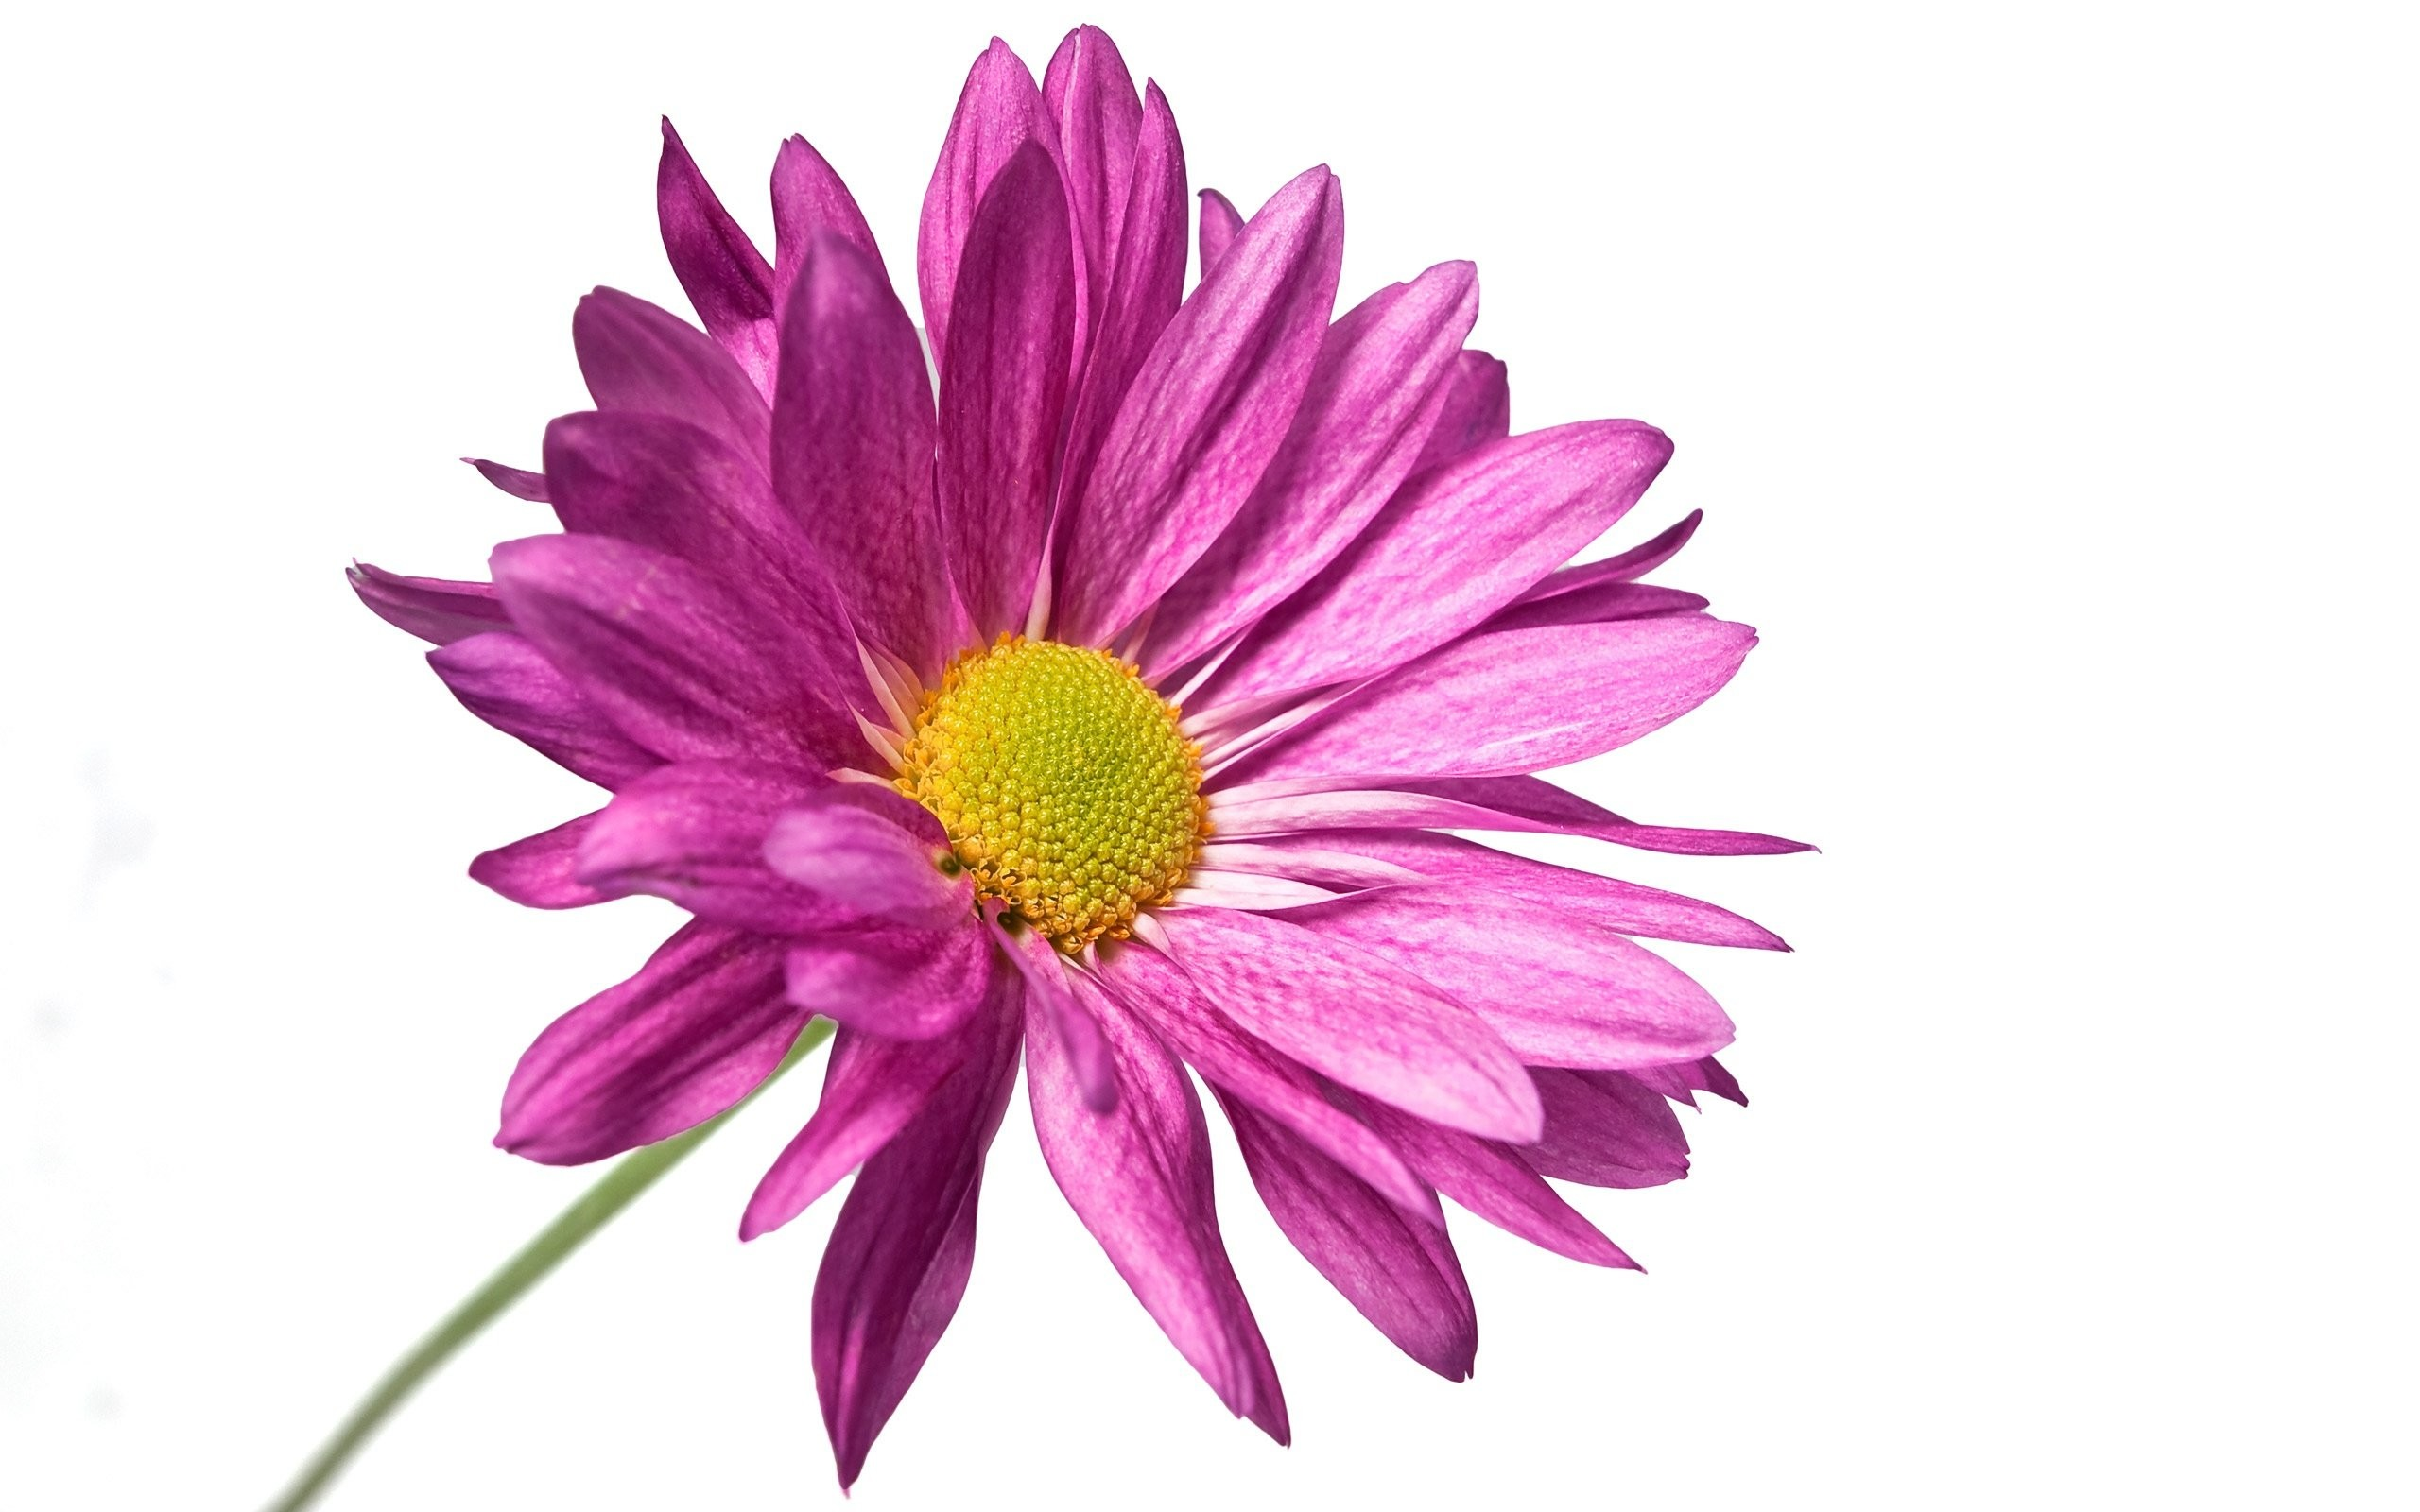 Purple flower white background 41 images 2560x1600 purple flower white background mightylinksfo